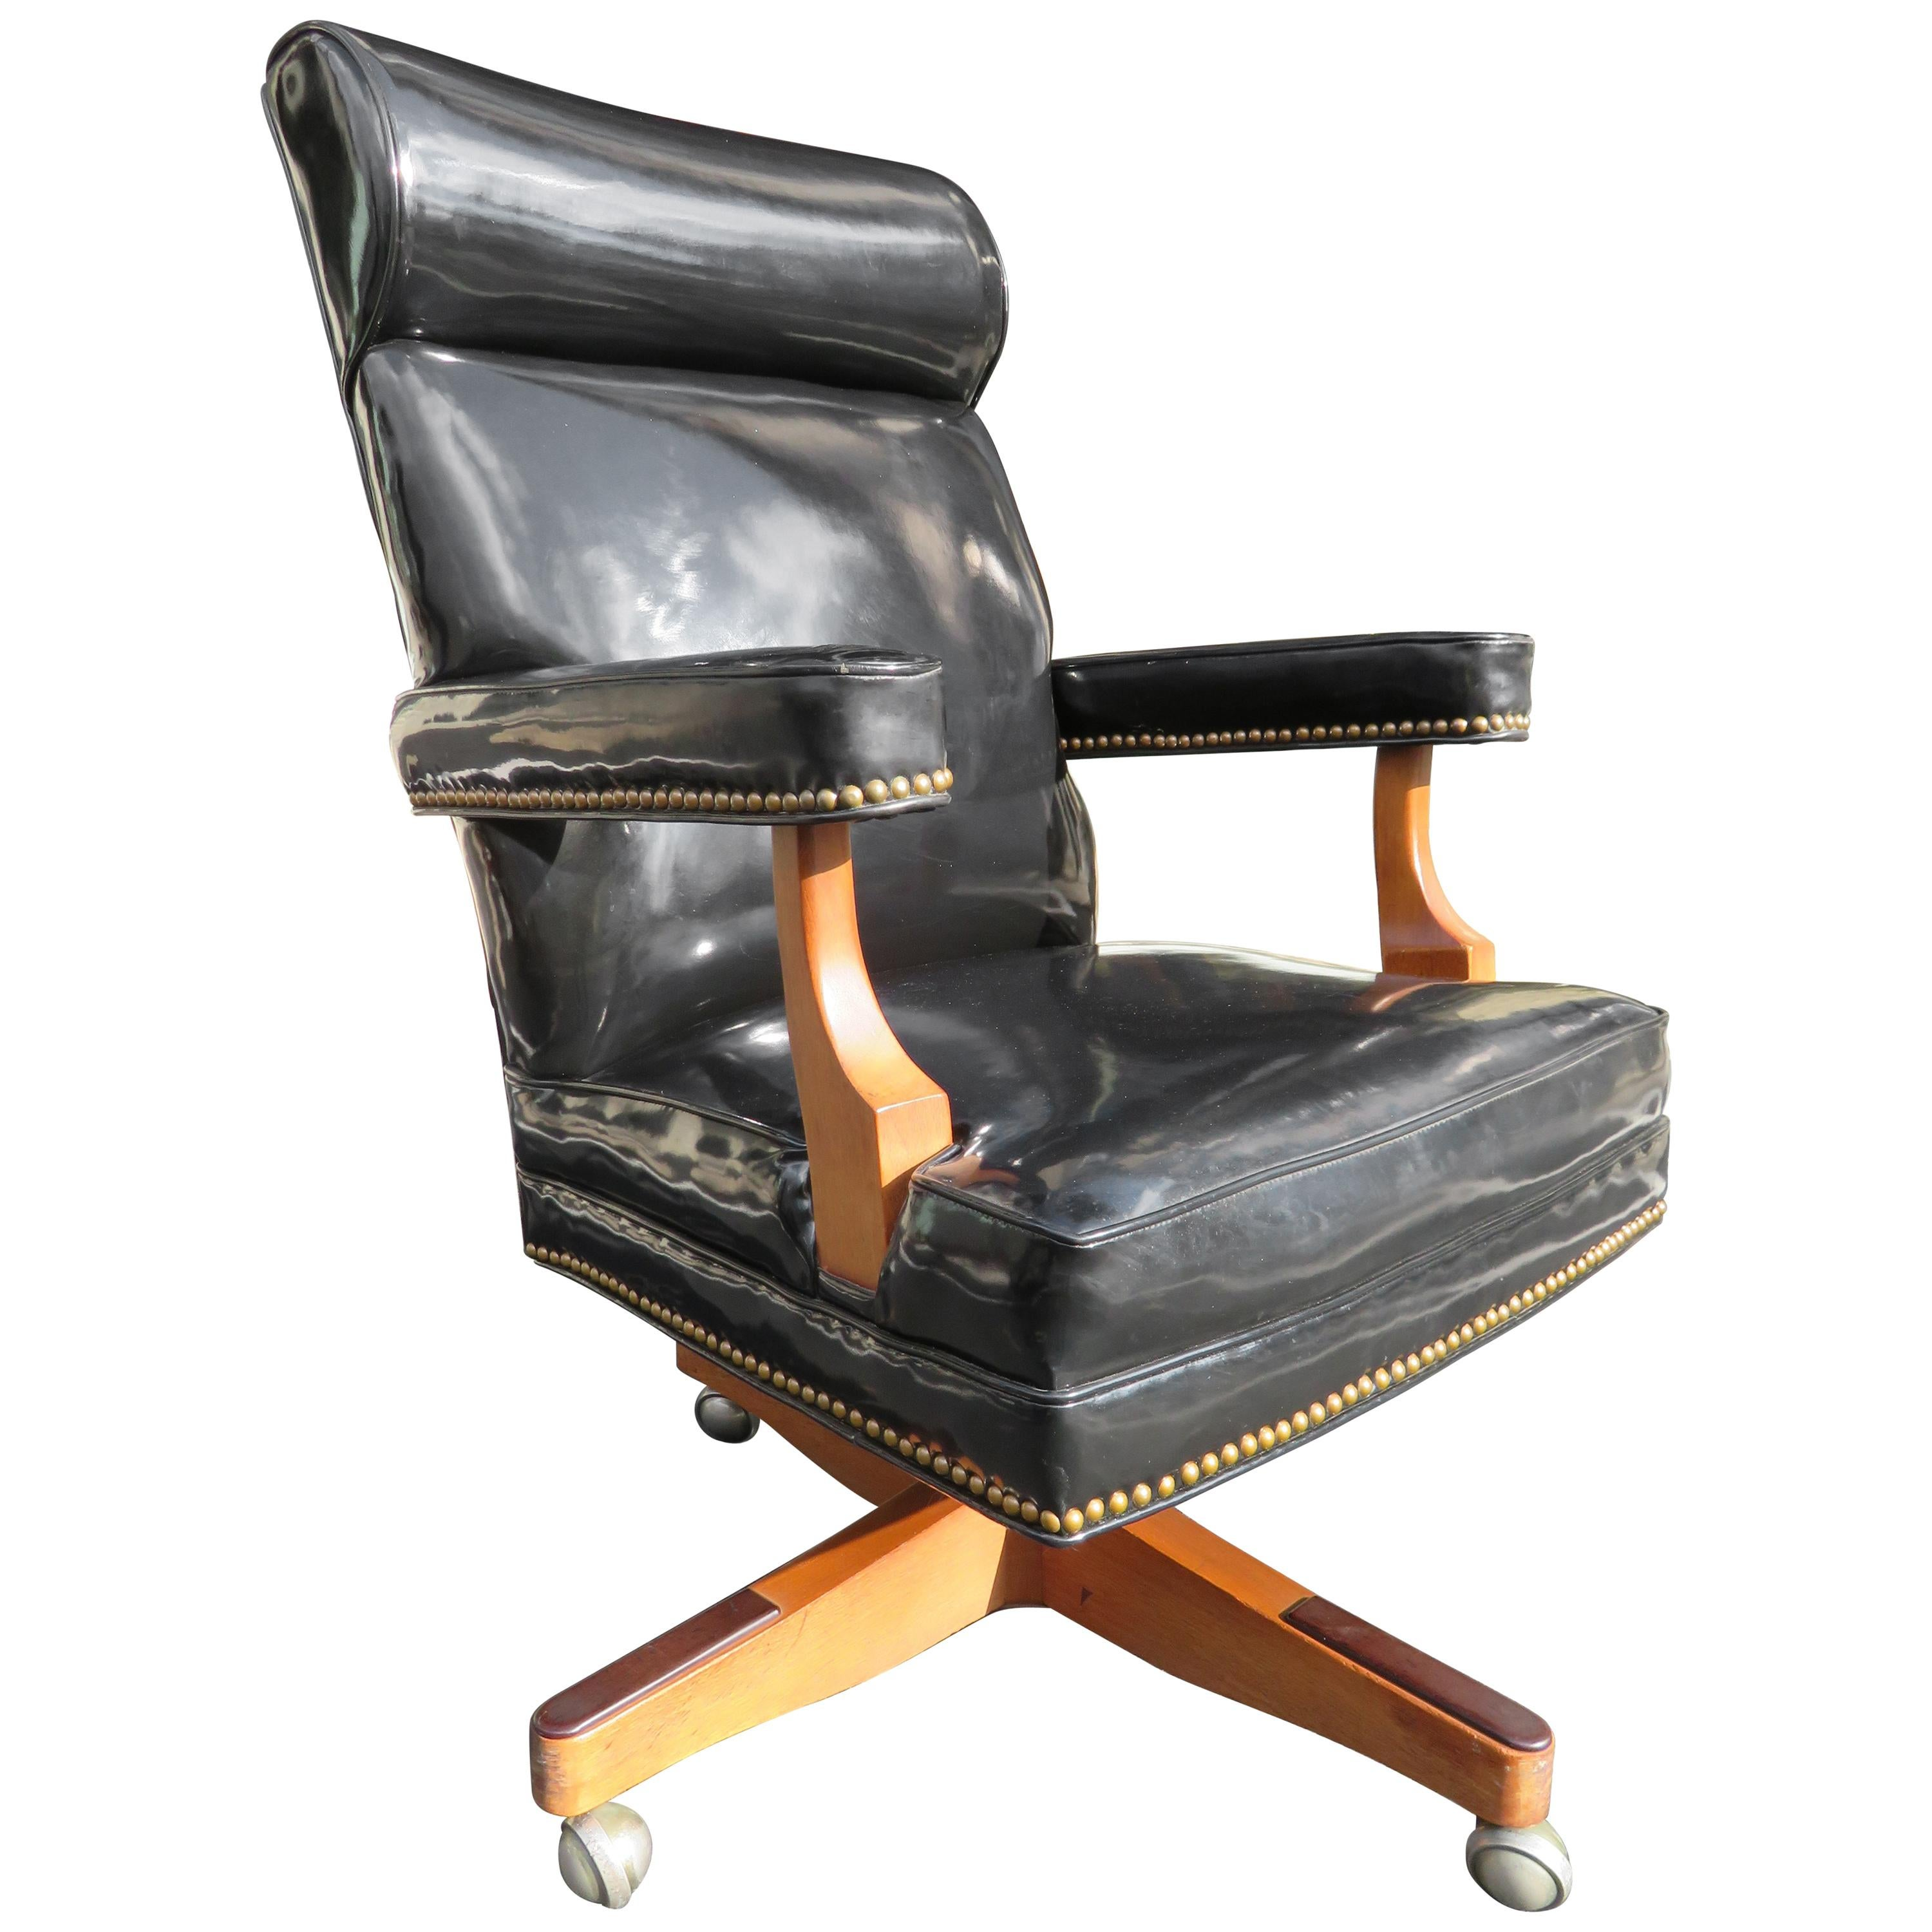 Handsome Oversized Patent Leather Rolling Executive Desk Chair For Sale At  1stdibs